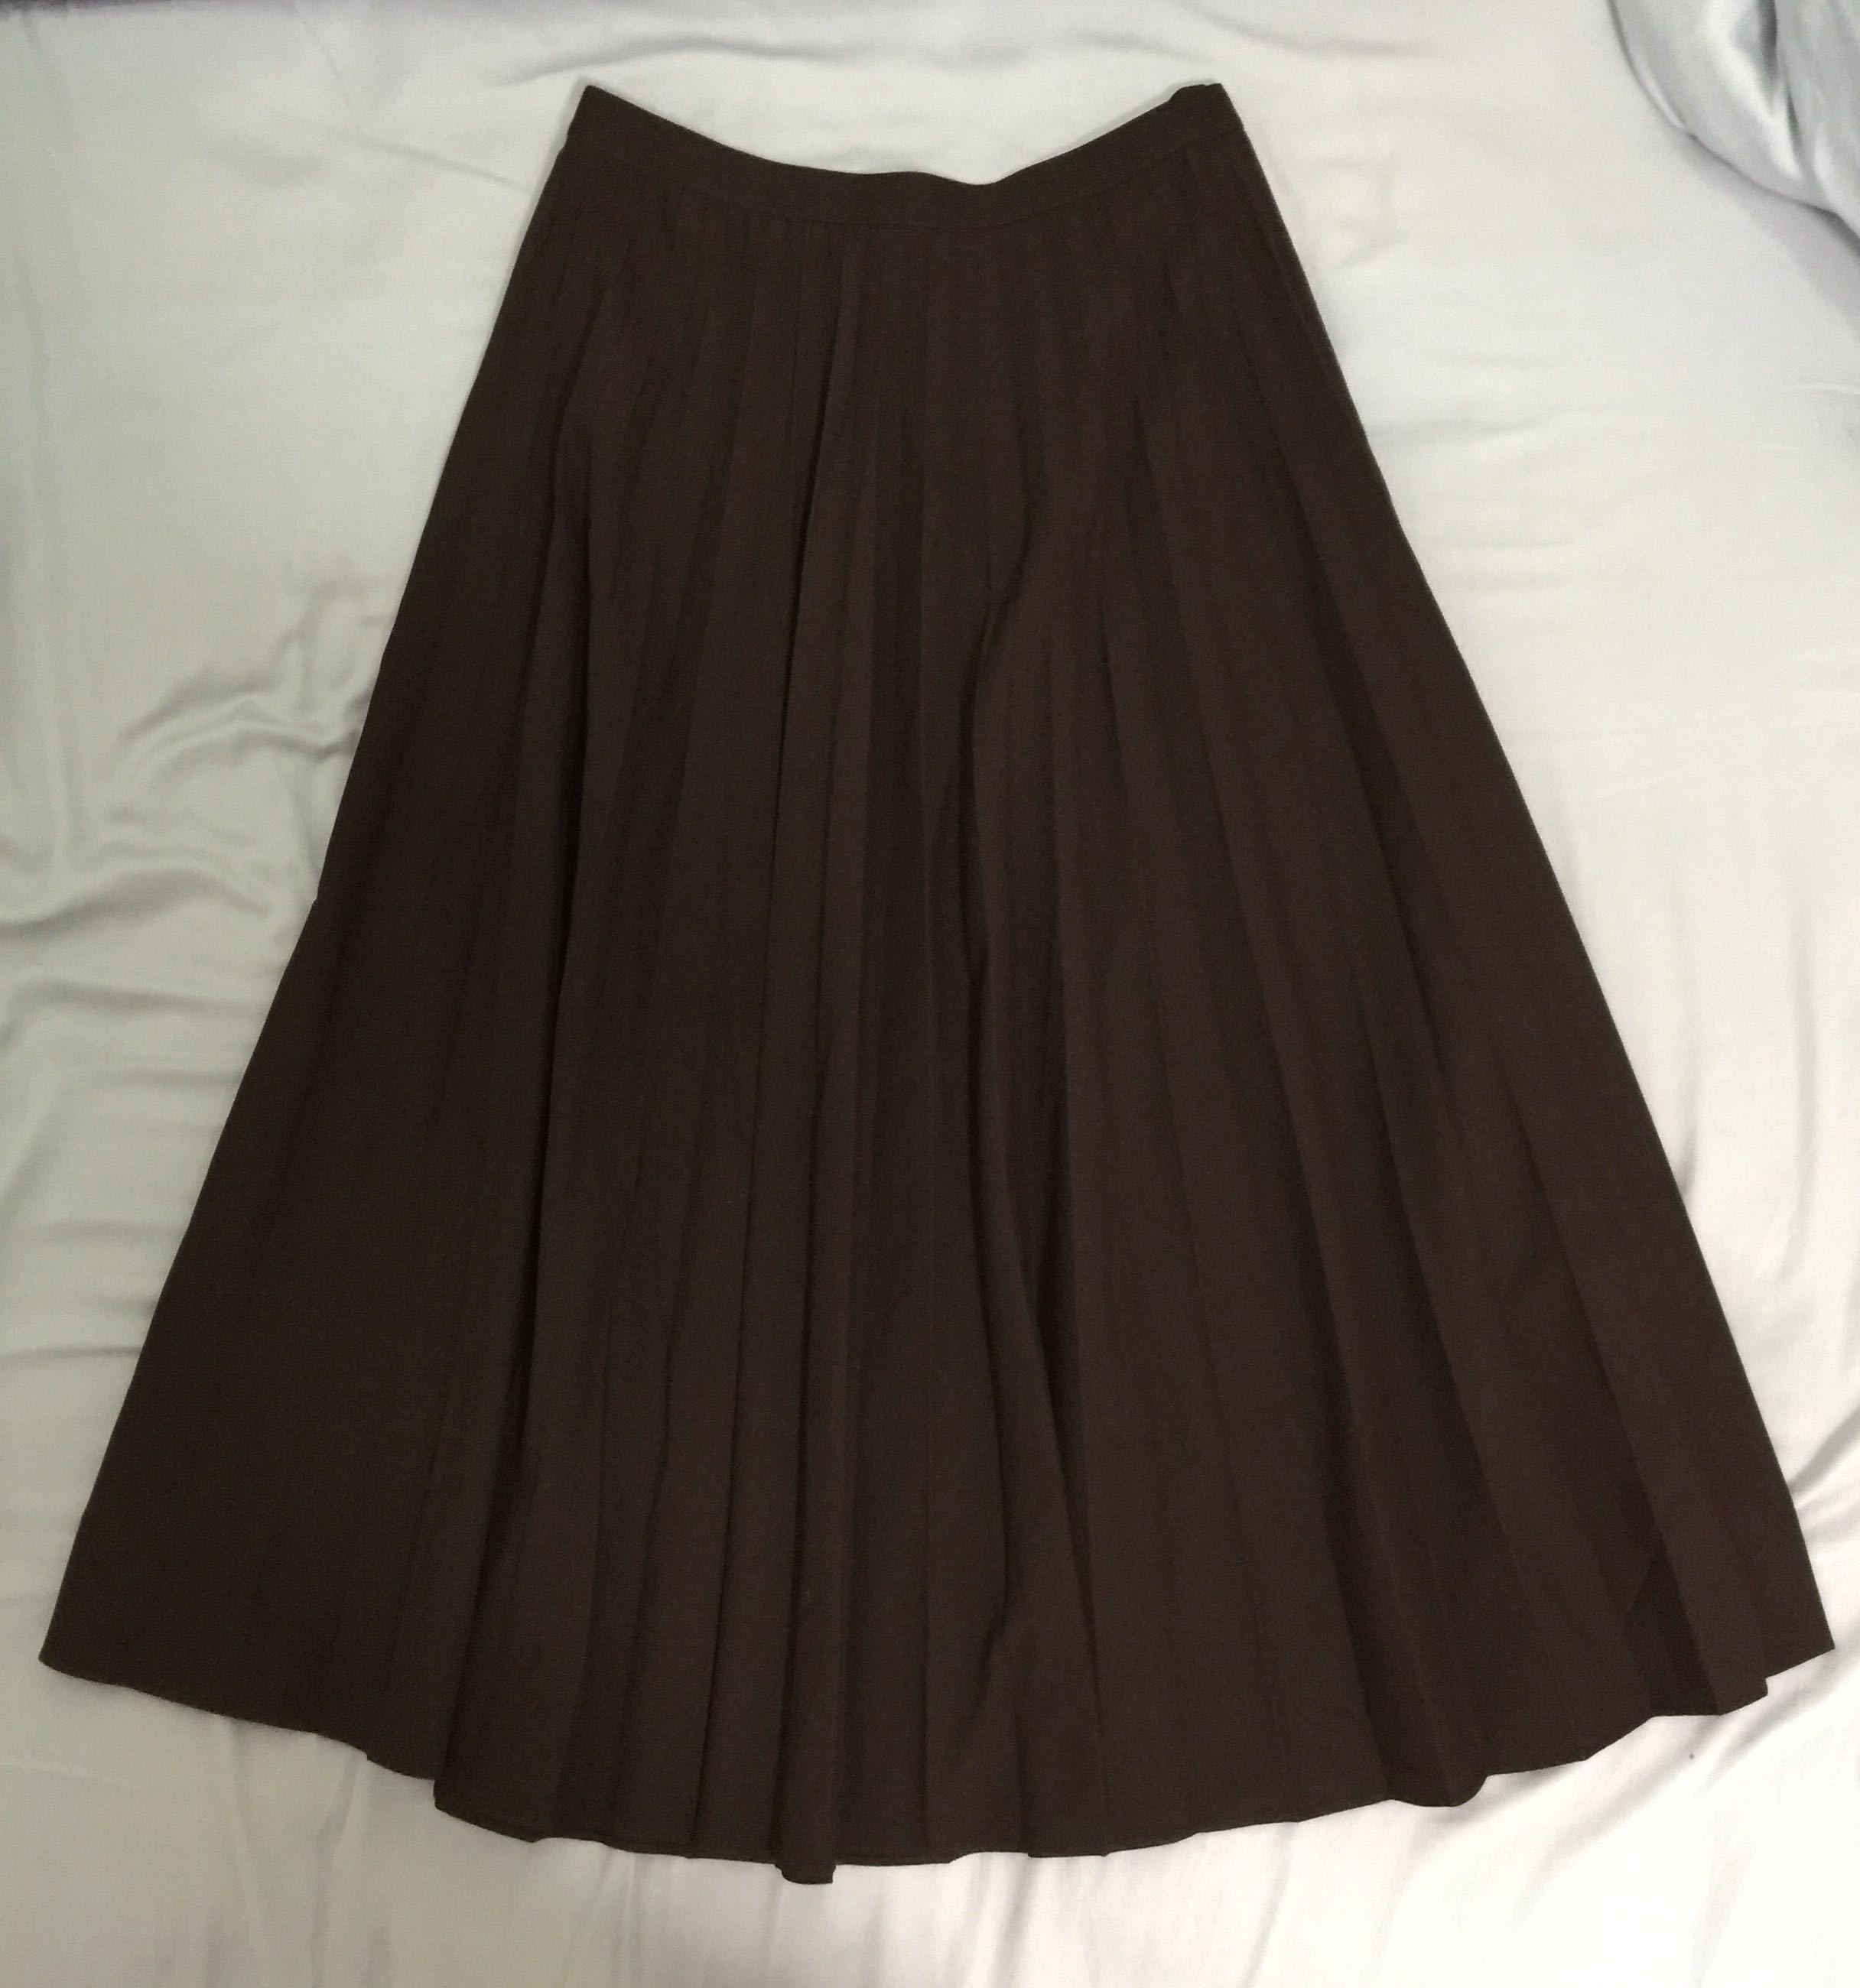 6e59c7391a Uniqlo Maroon Pleated Skirt, Women's Fashion, Clothes, Dresses ...